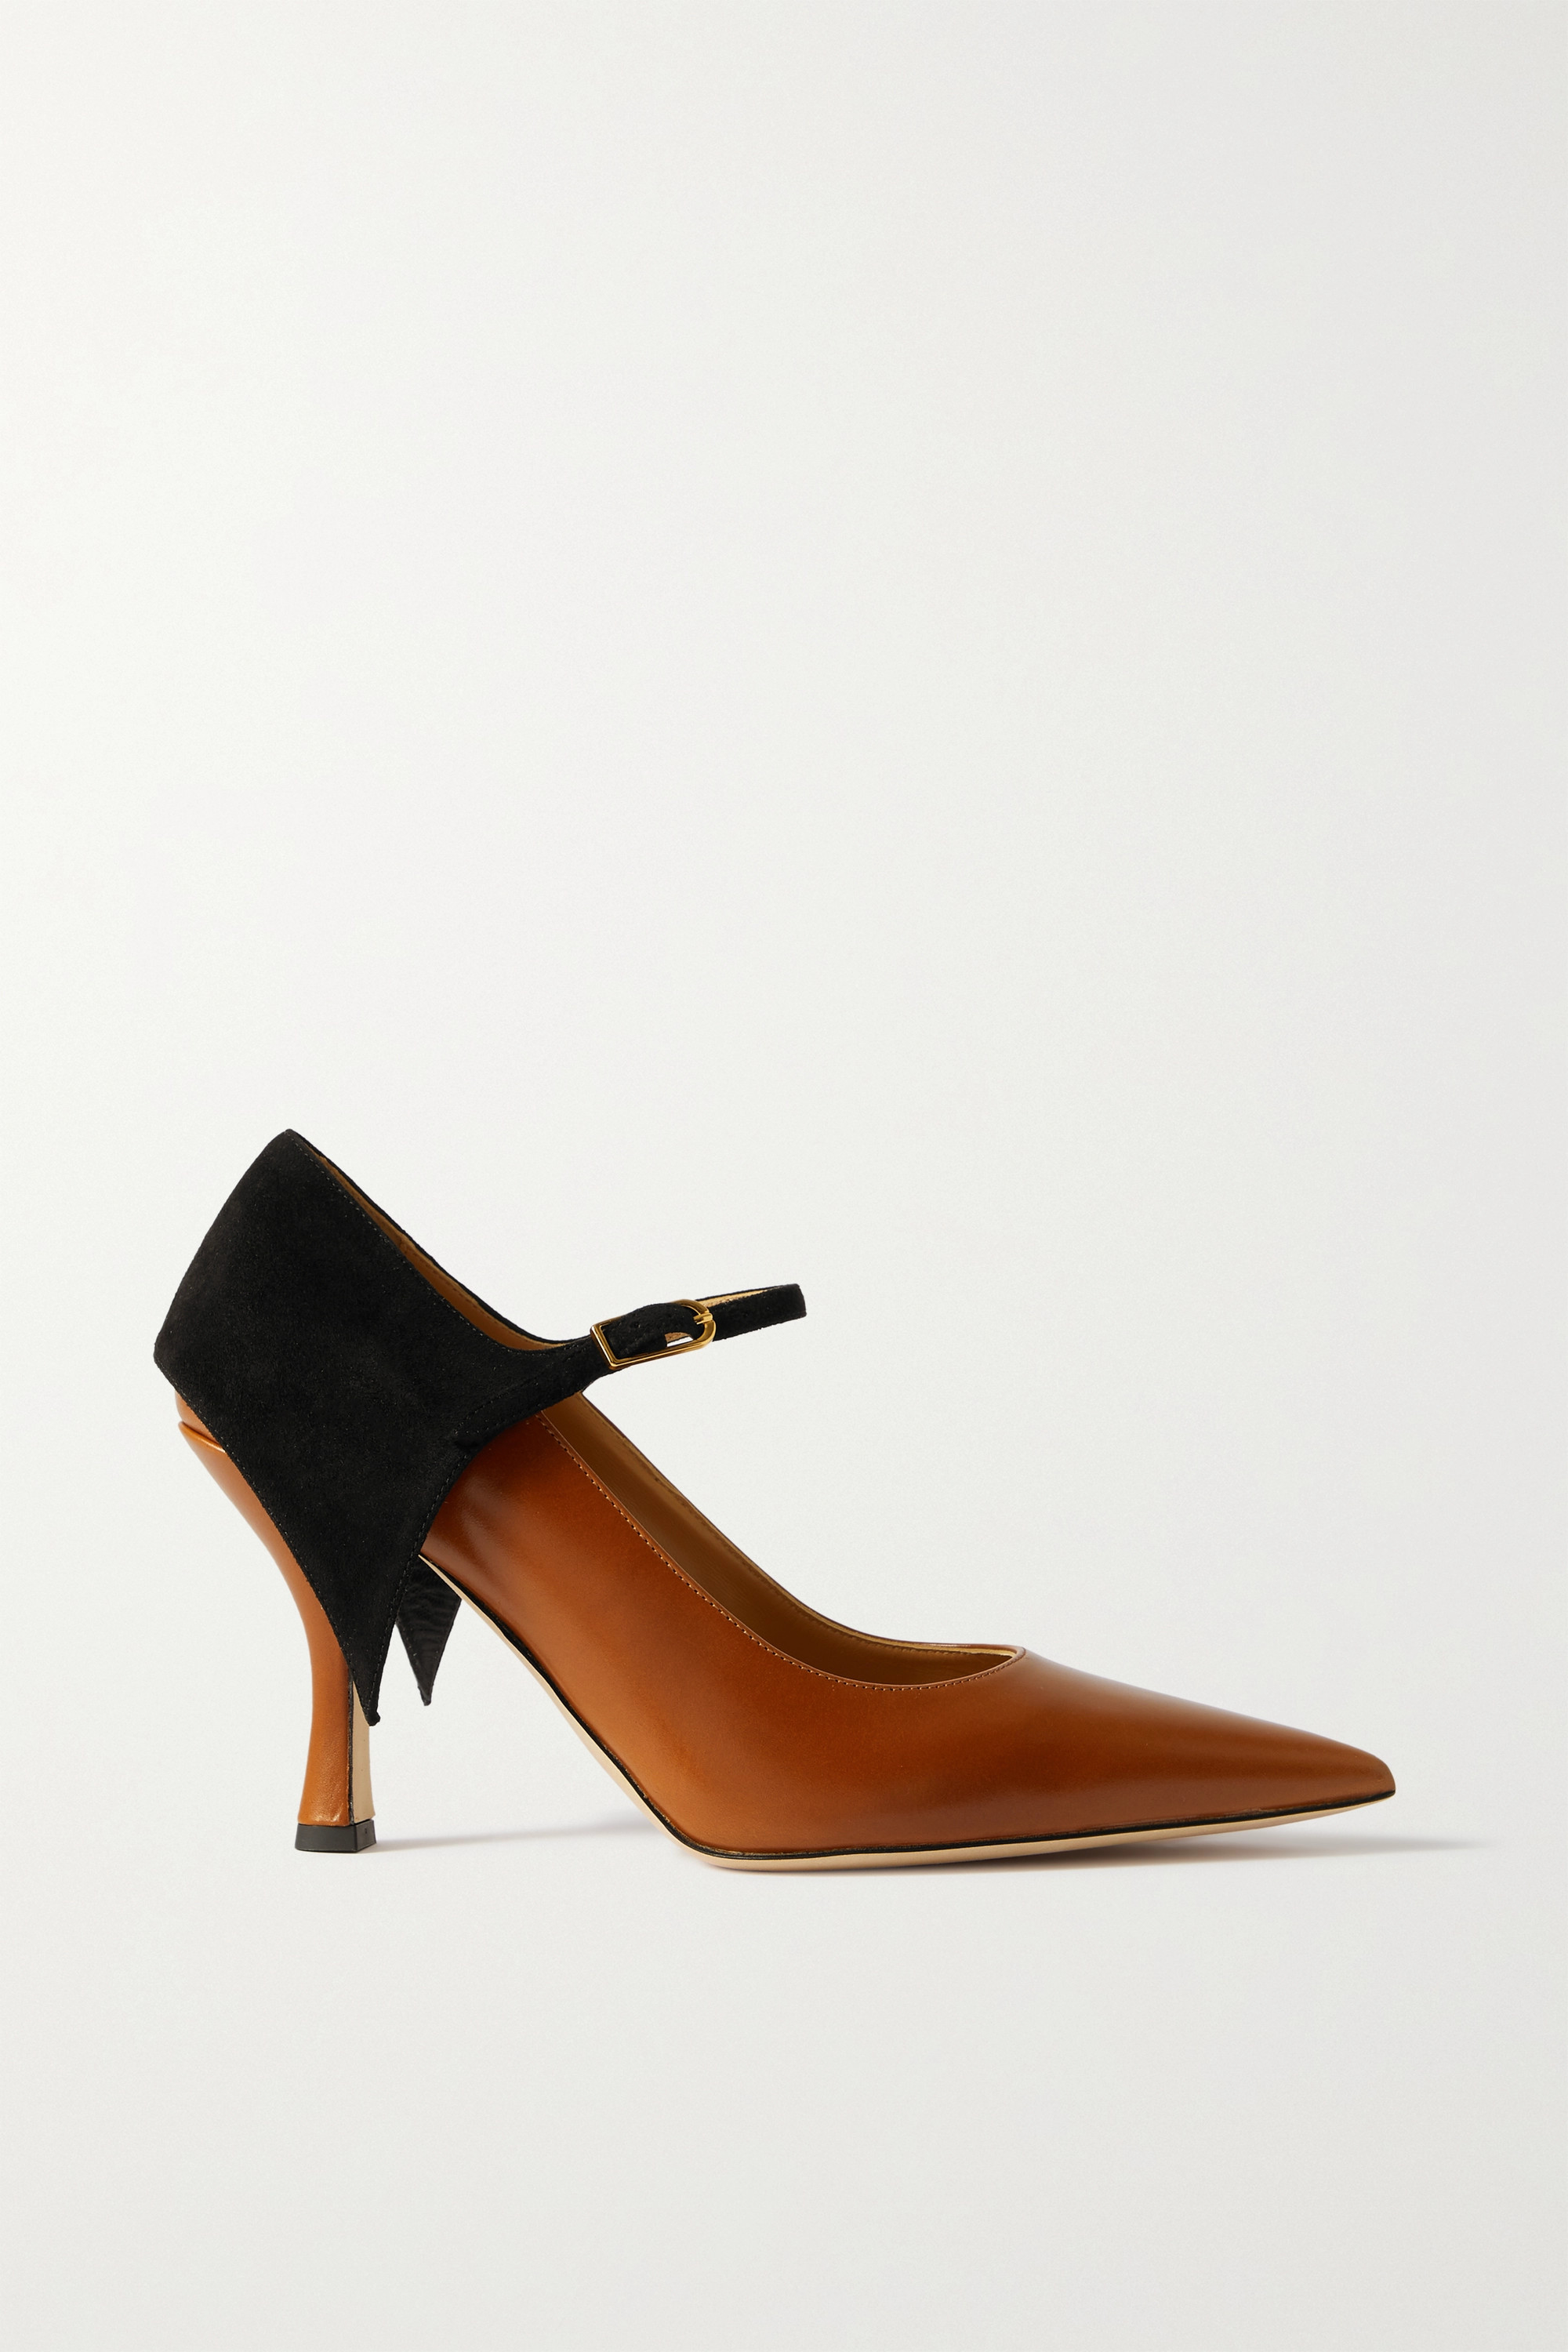 LOEWE Cape suede and leather pumps